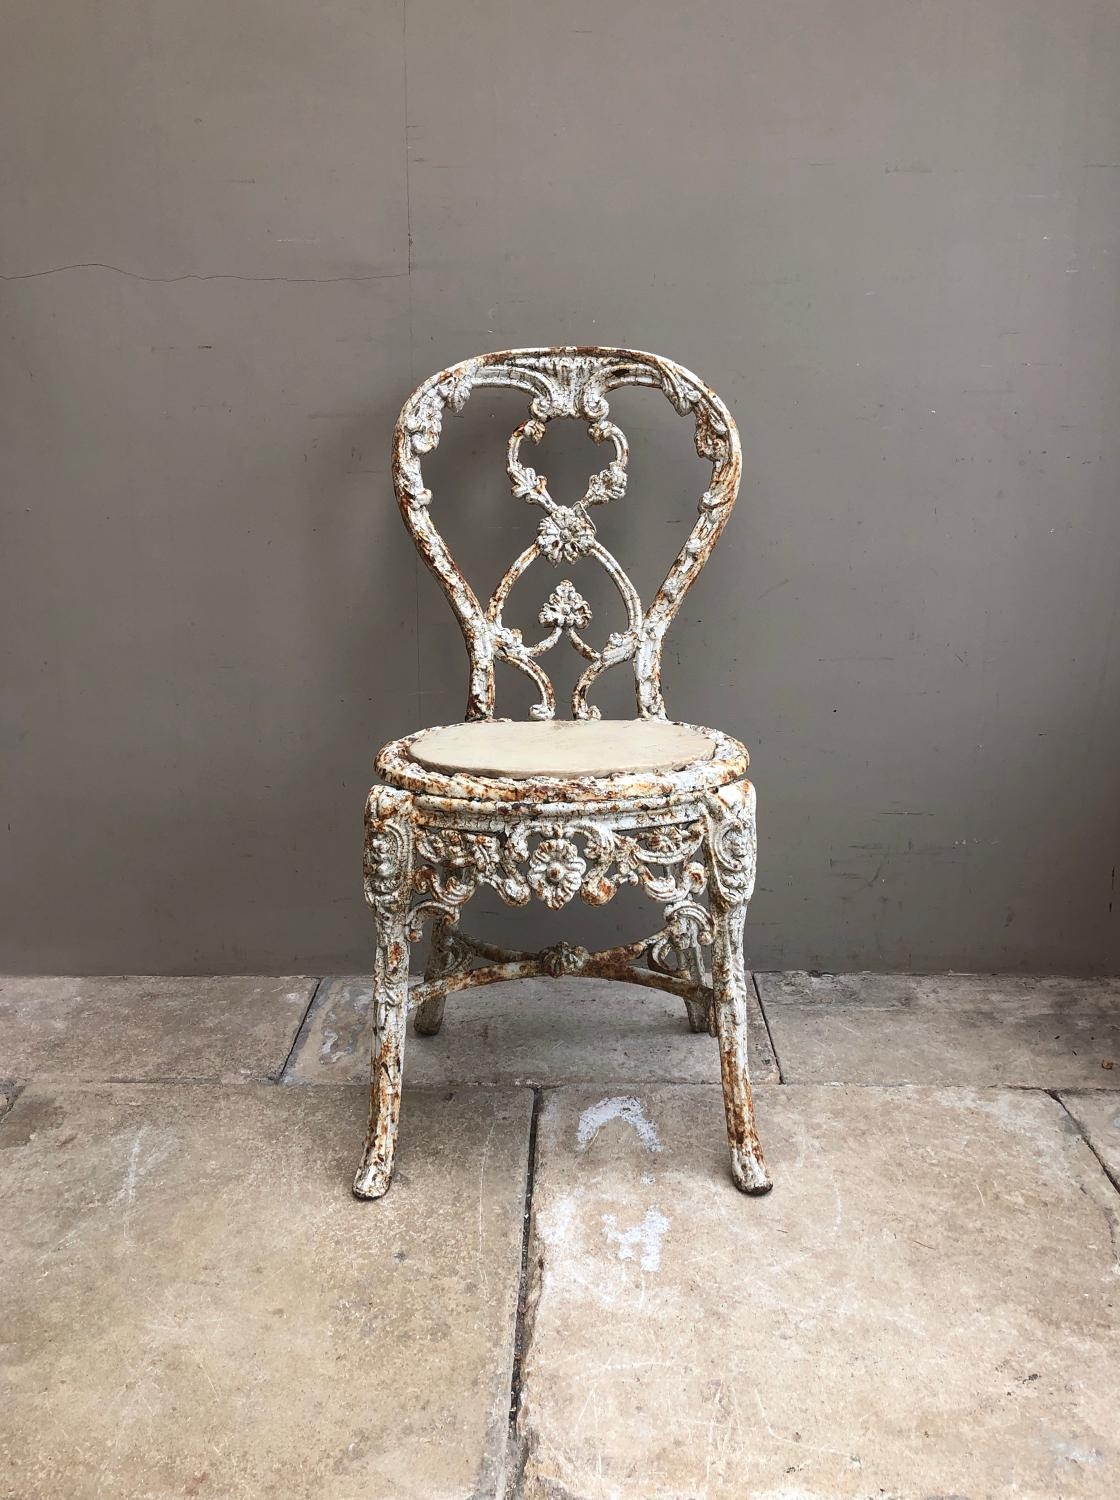 Victorian Cast Iron Garden or Conservatory Chair.